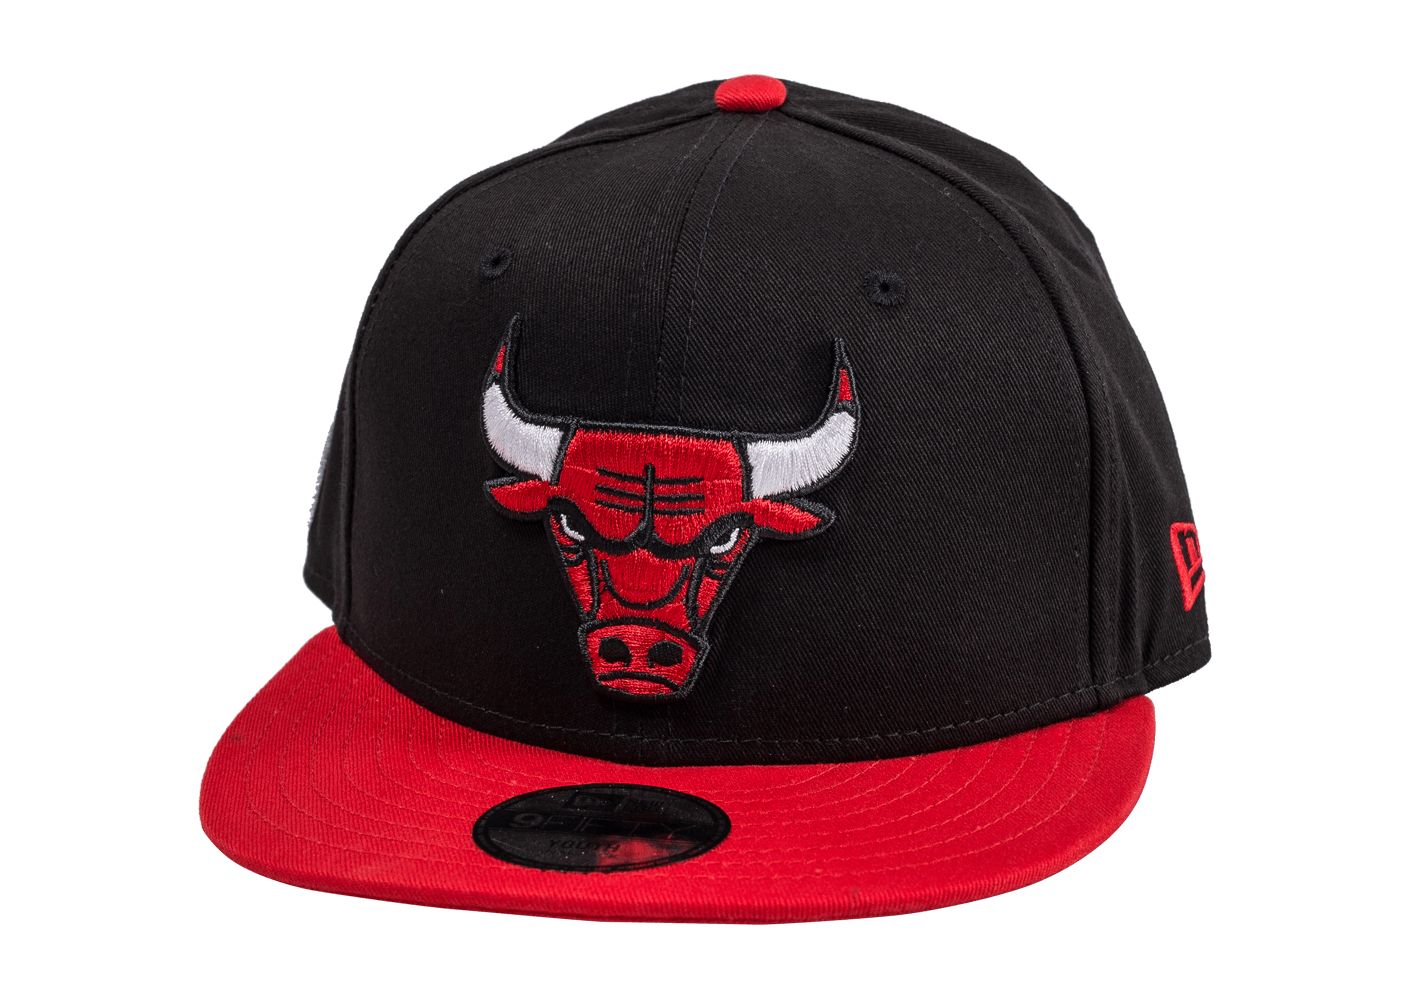 new era casquette snapback chicago bulls enfant black friday chausport. Black Bedroom Furniture Sets. Home Design Ideas